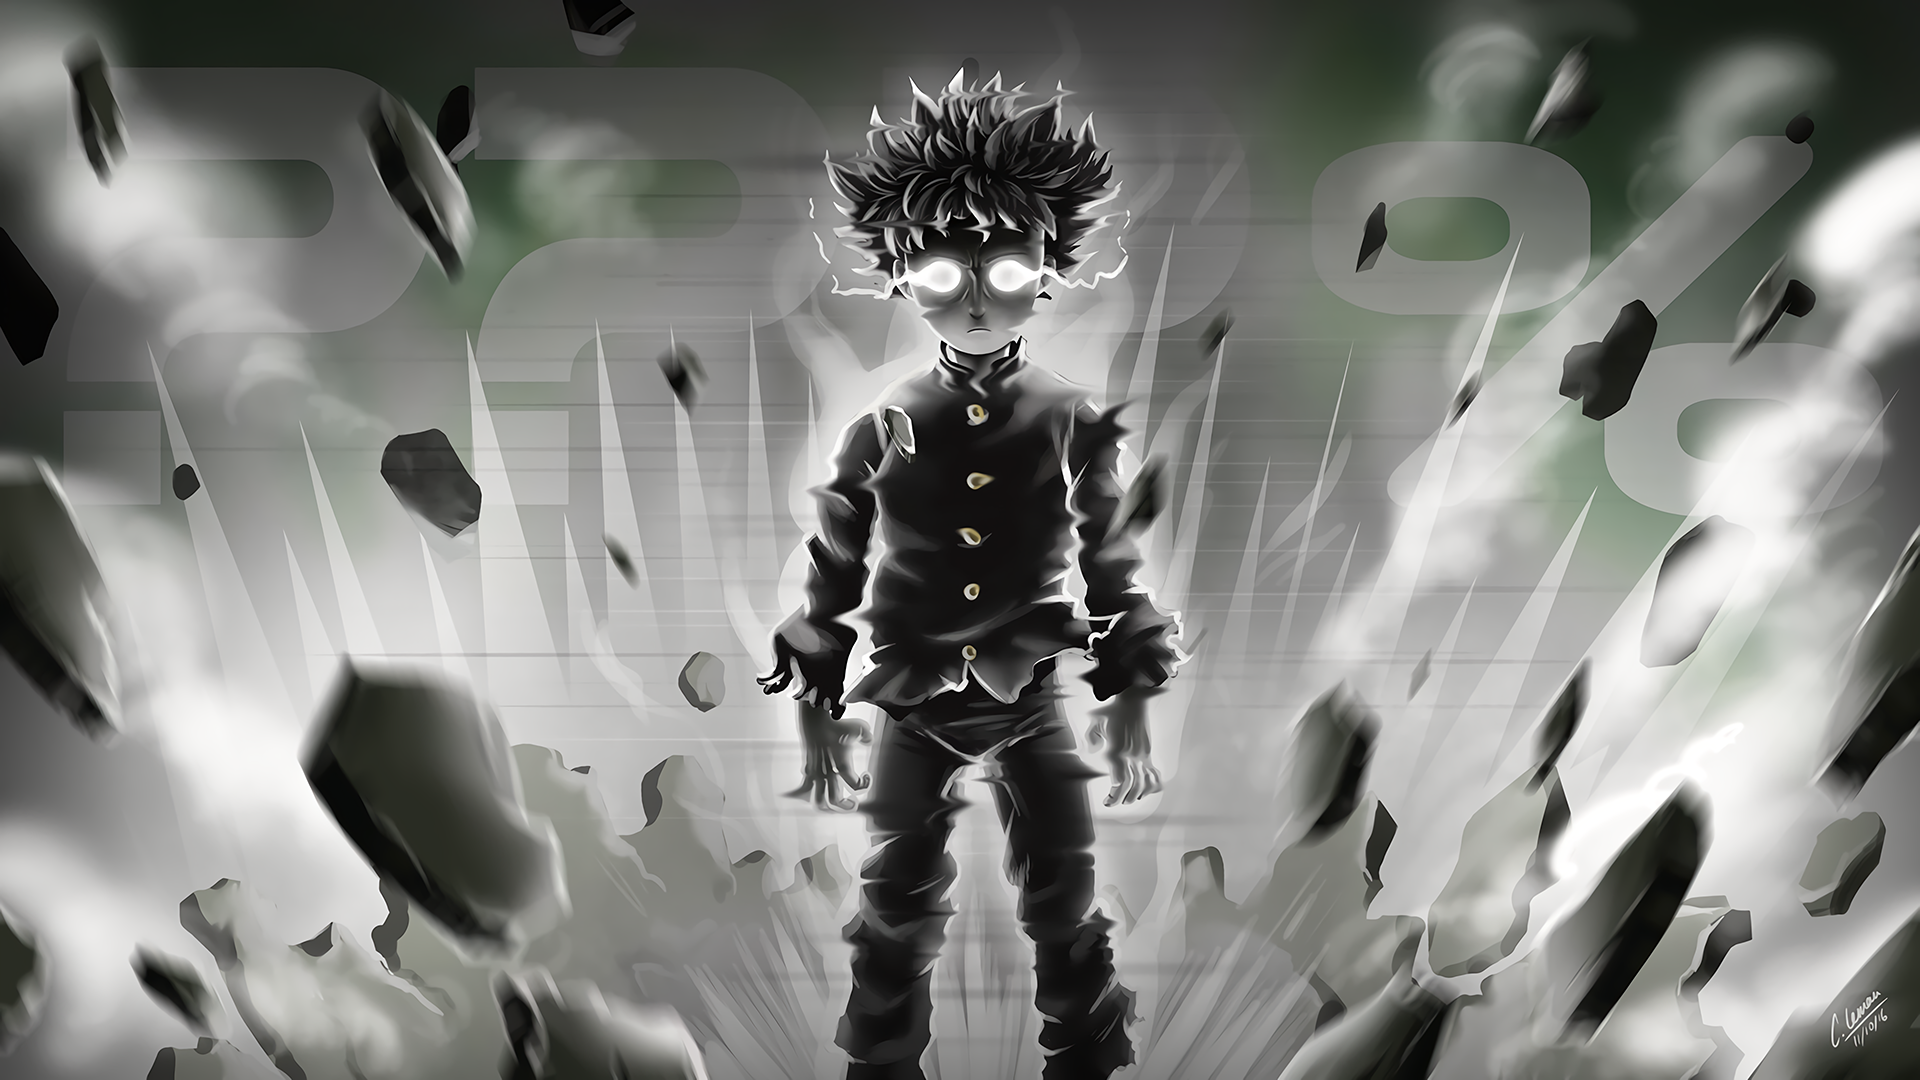 General 1920x1080 Mob Psycho 100 debris Shigeo Kageyama Self awareness anime